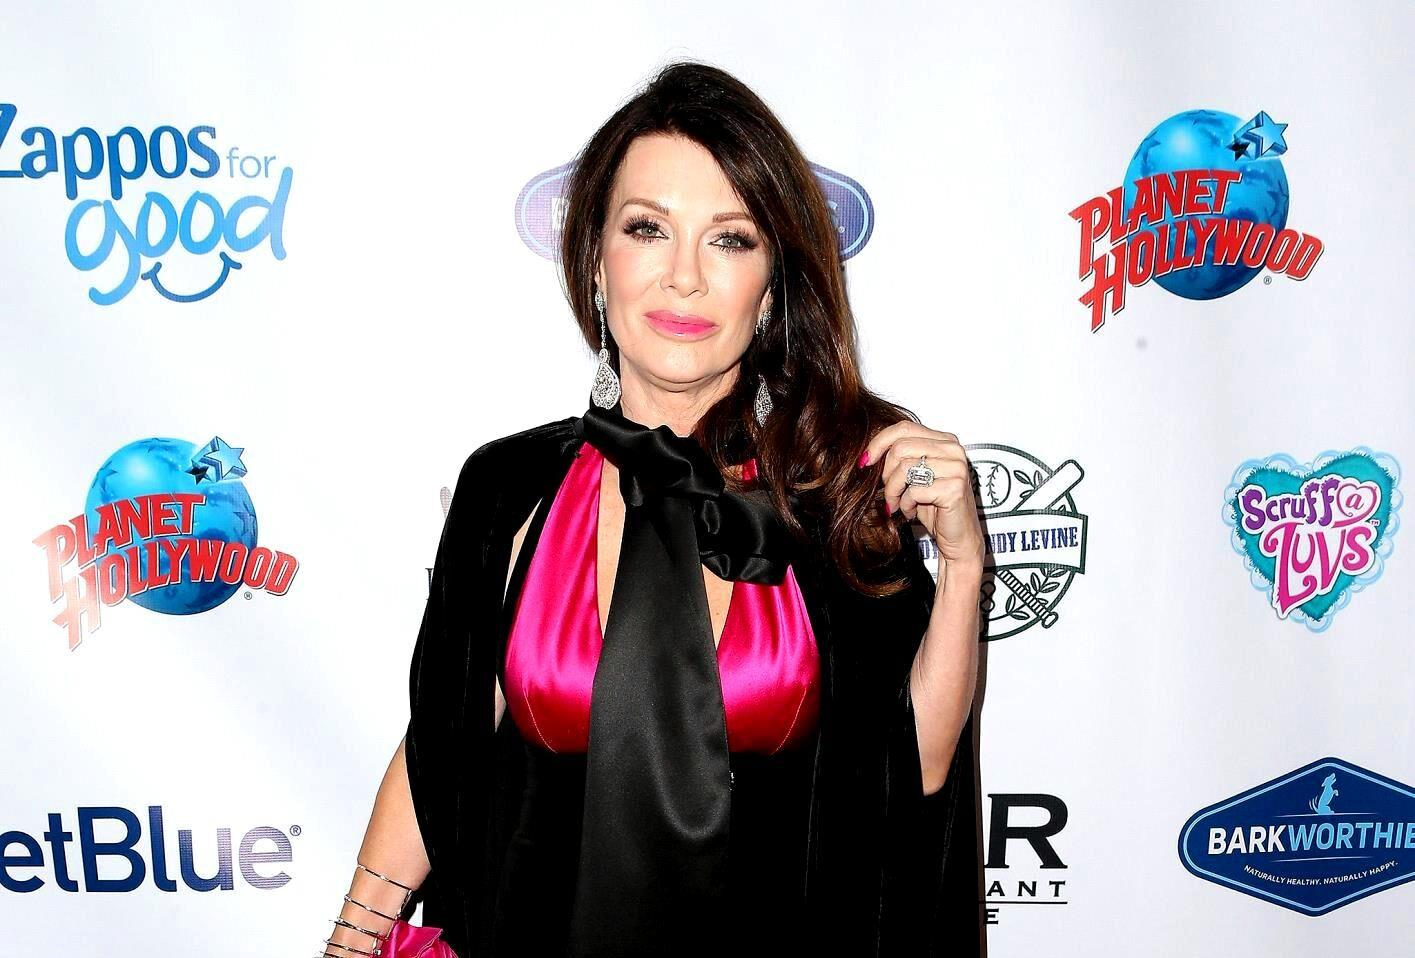 Lisa Vanderpump's Former RHOBH Castmates 'Don't Feel Guilty' For Dragging Her In The Season 9 Finale - Here's Why!